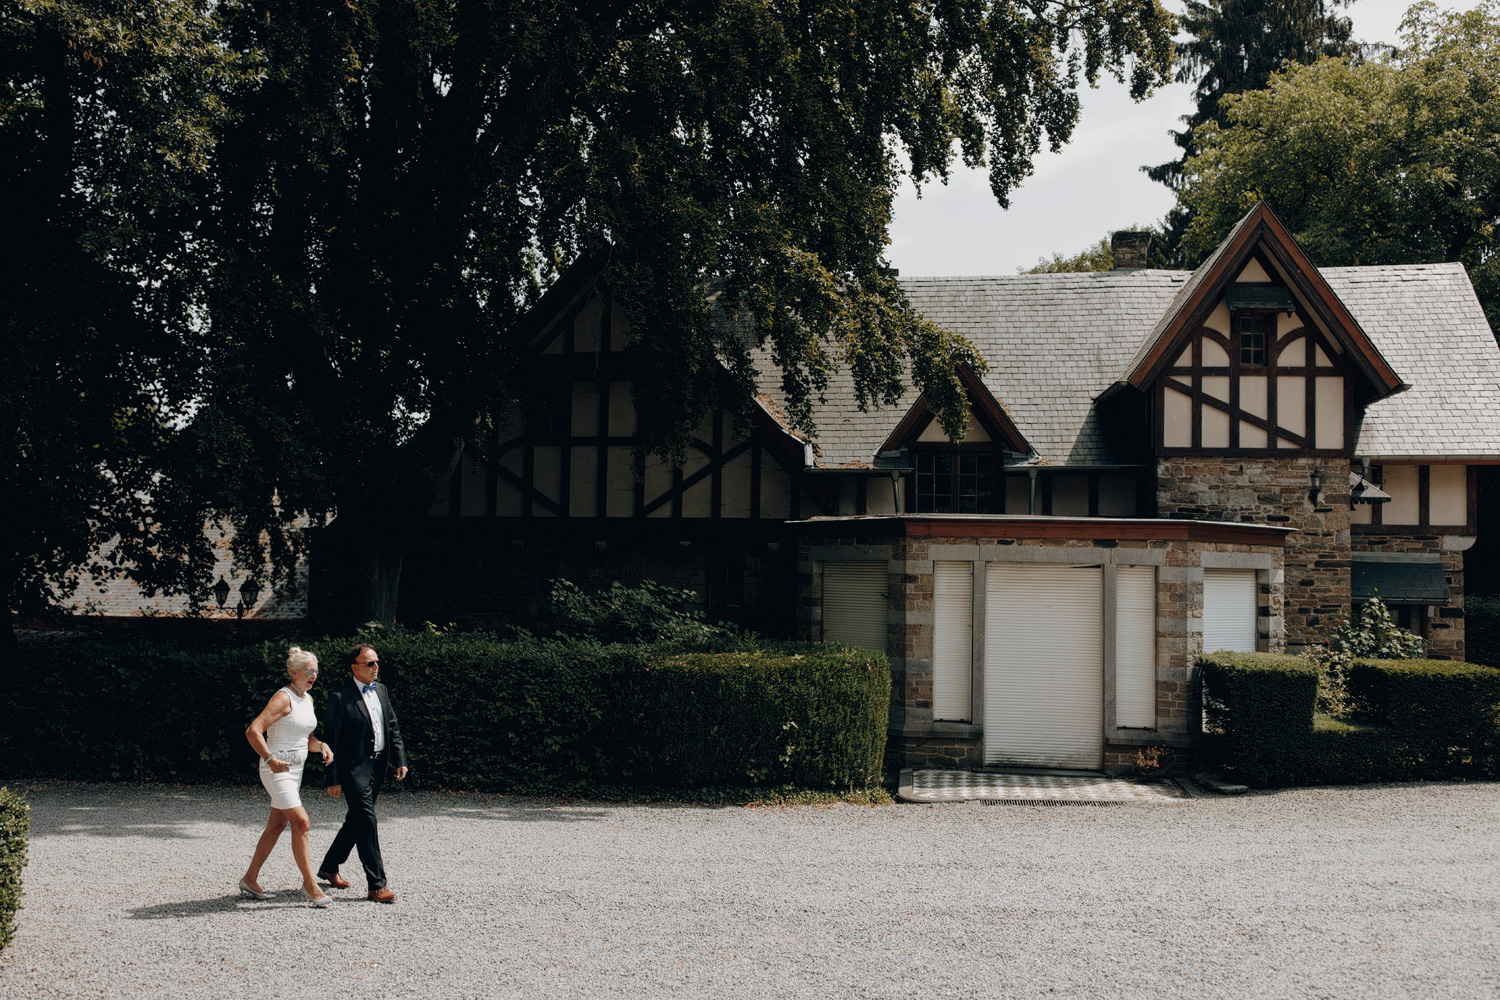 People walking in Chateau de Presseux